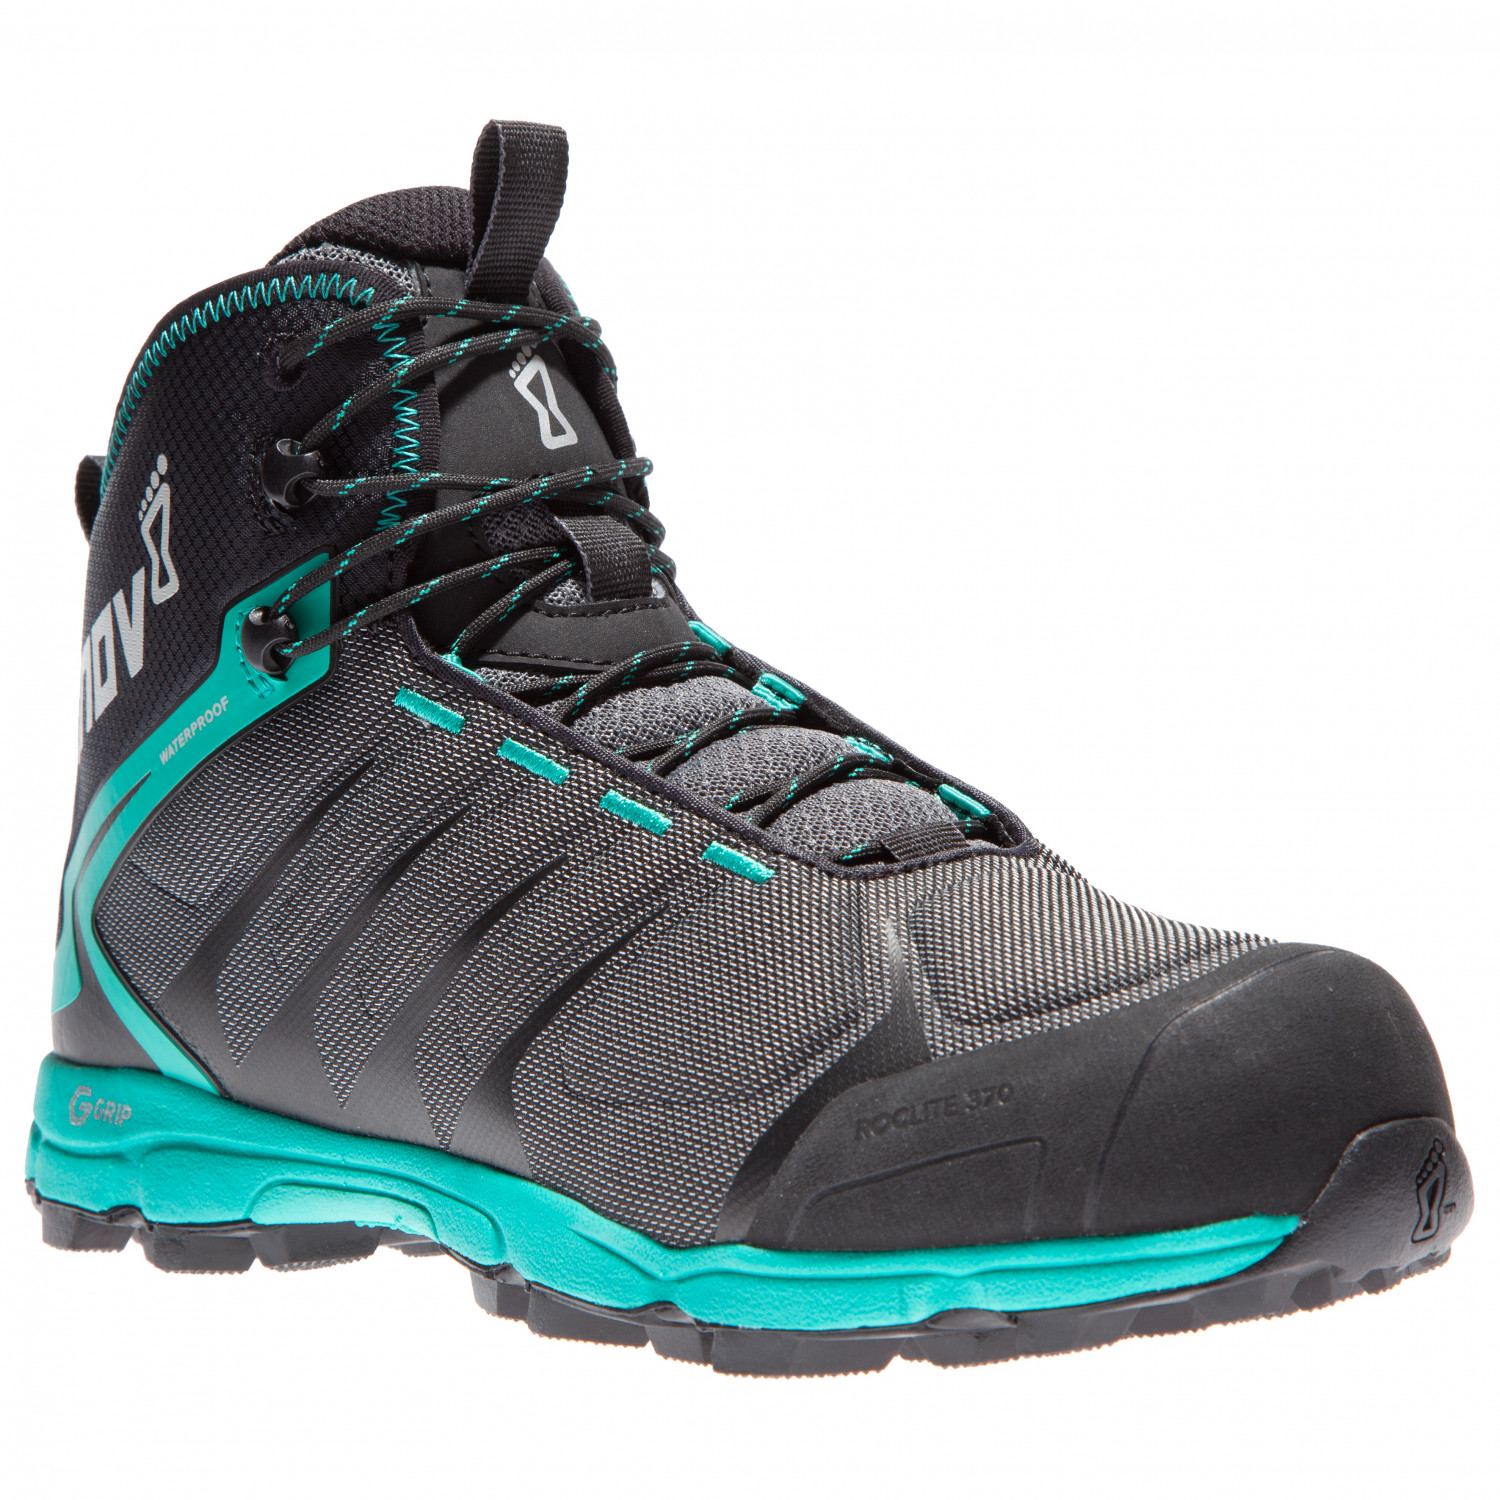 cheap for discount d9caa 93f6c Inov-8 - Women's Roclite 370 - Multisport shoes - Black / Teal | 4 (UK)